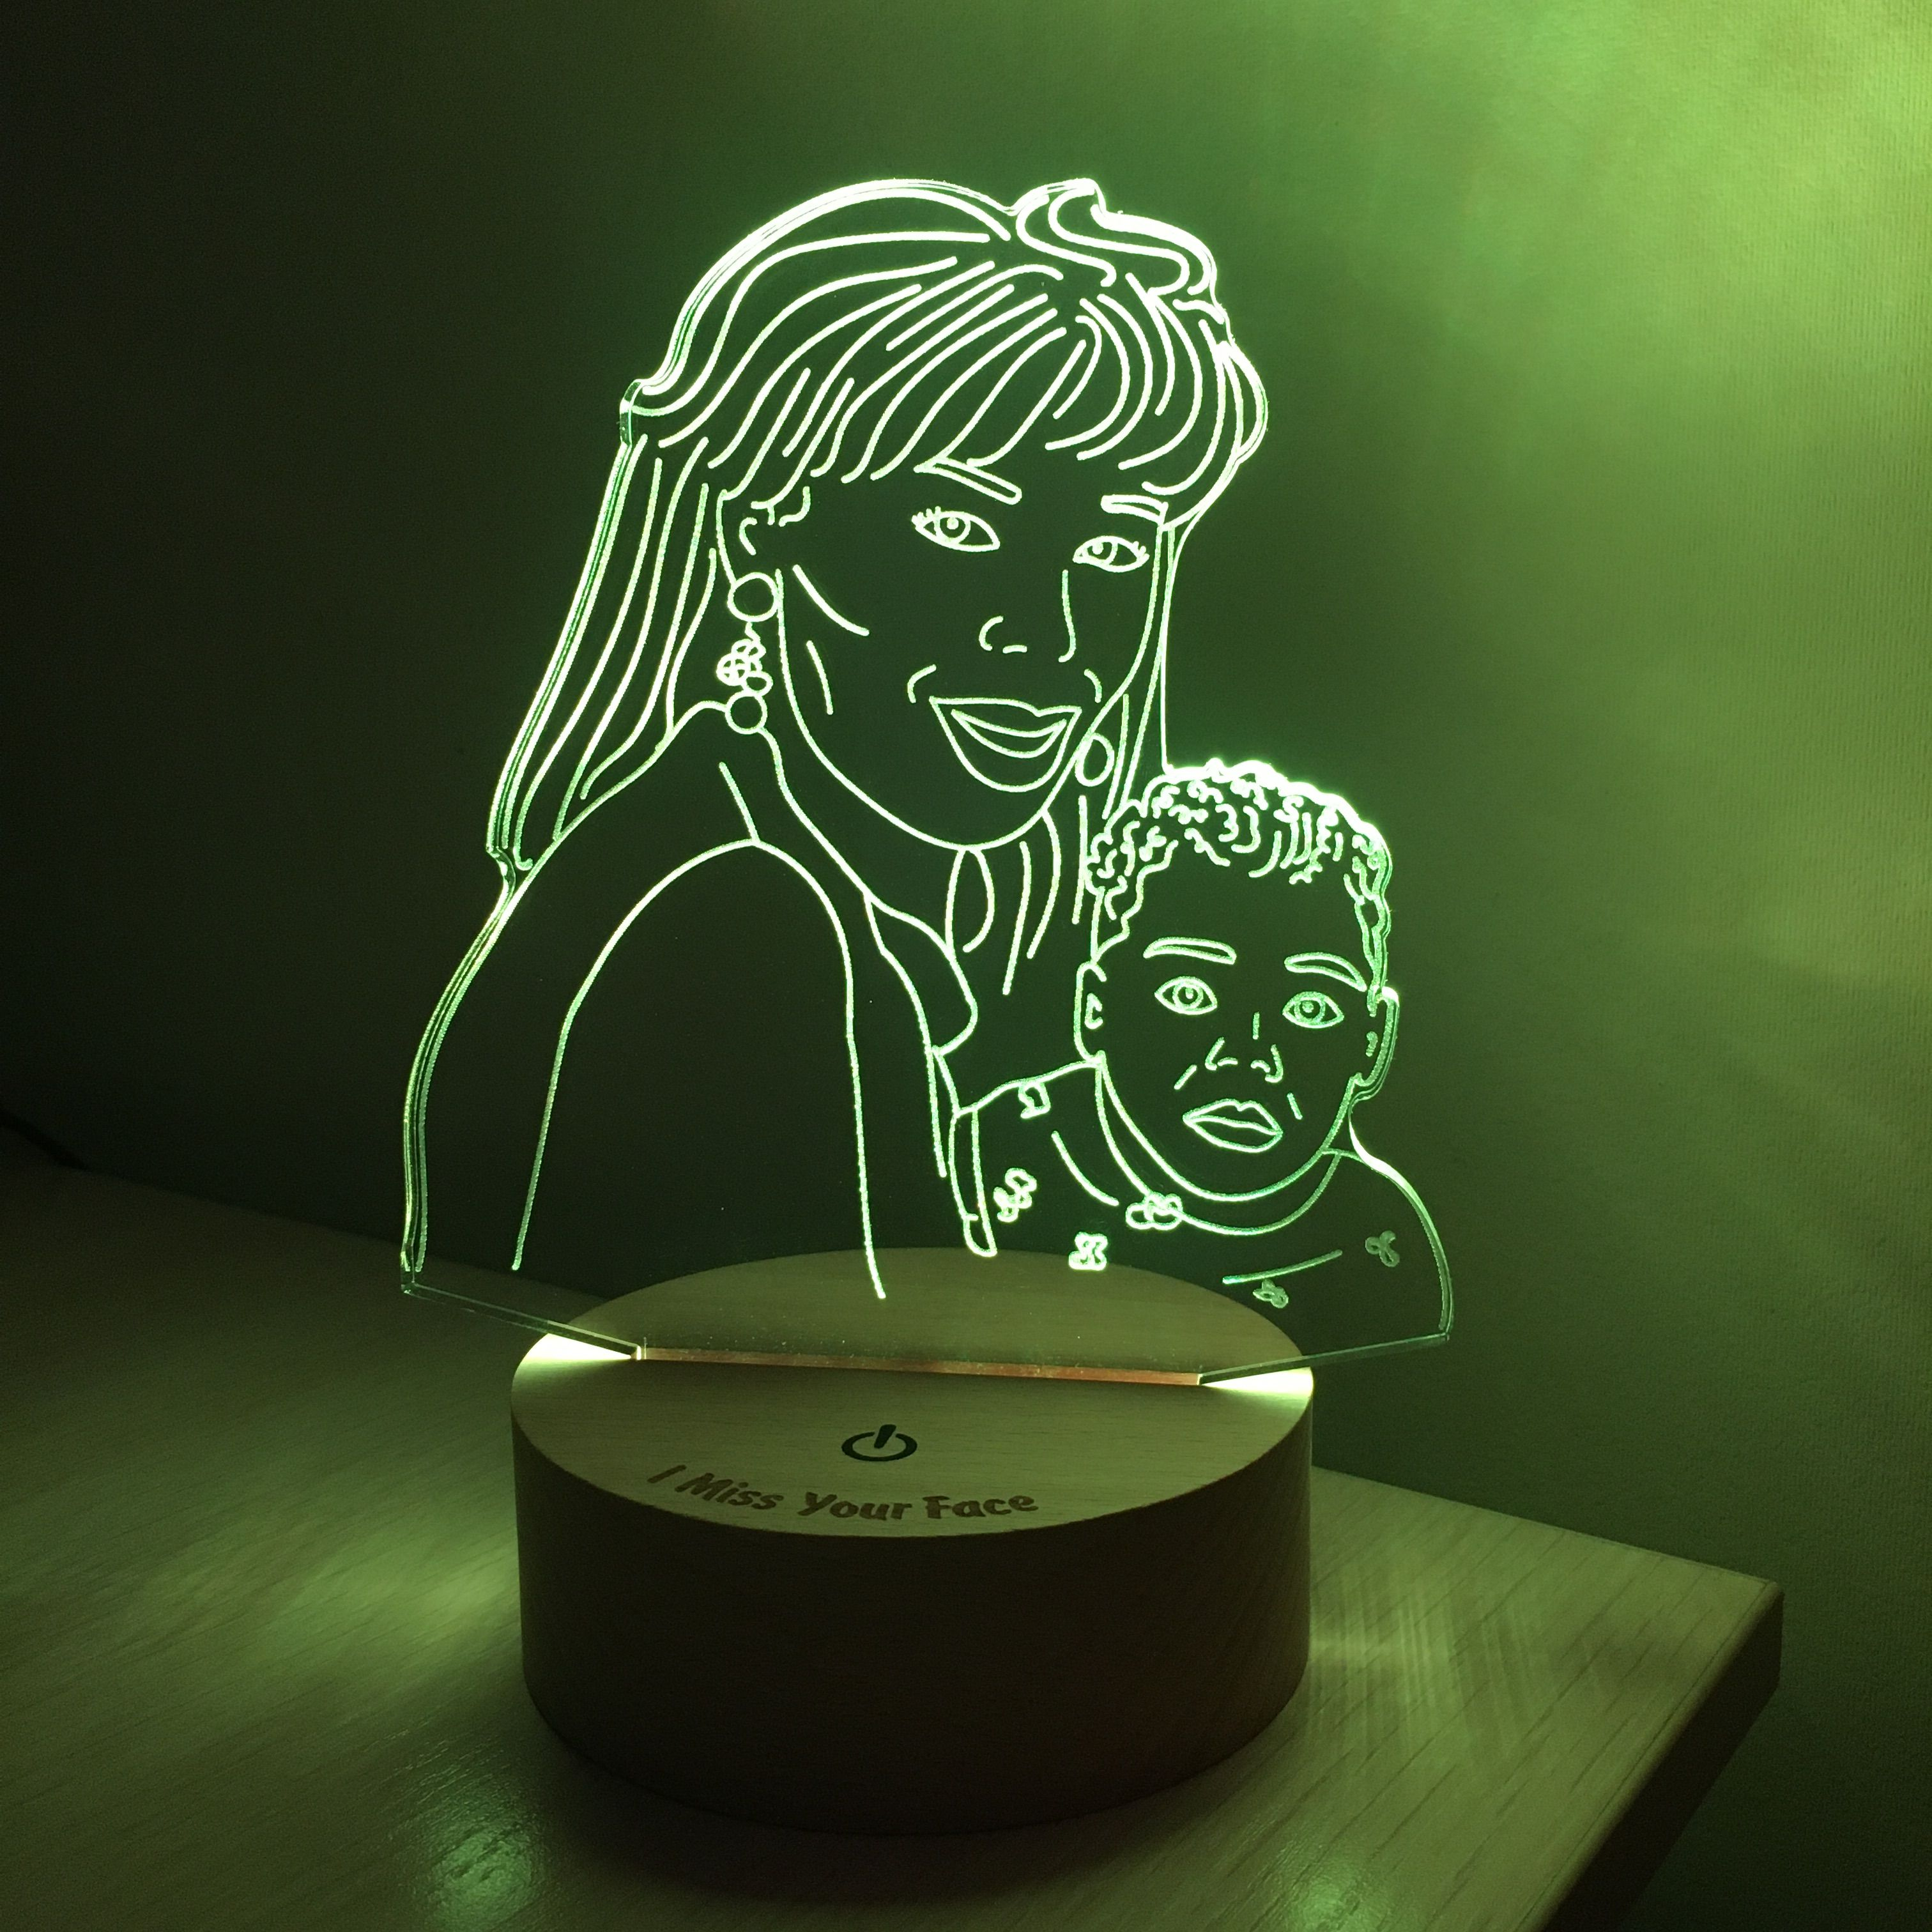 Couple Lamp Drawing From Photo Nightlight Led Dimmable Etsy In 2020 Photo Lamp 3d Led Lamp Night Light